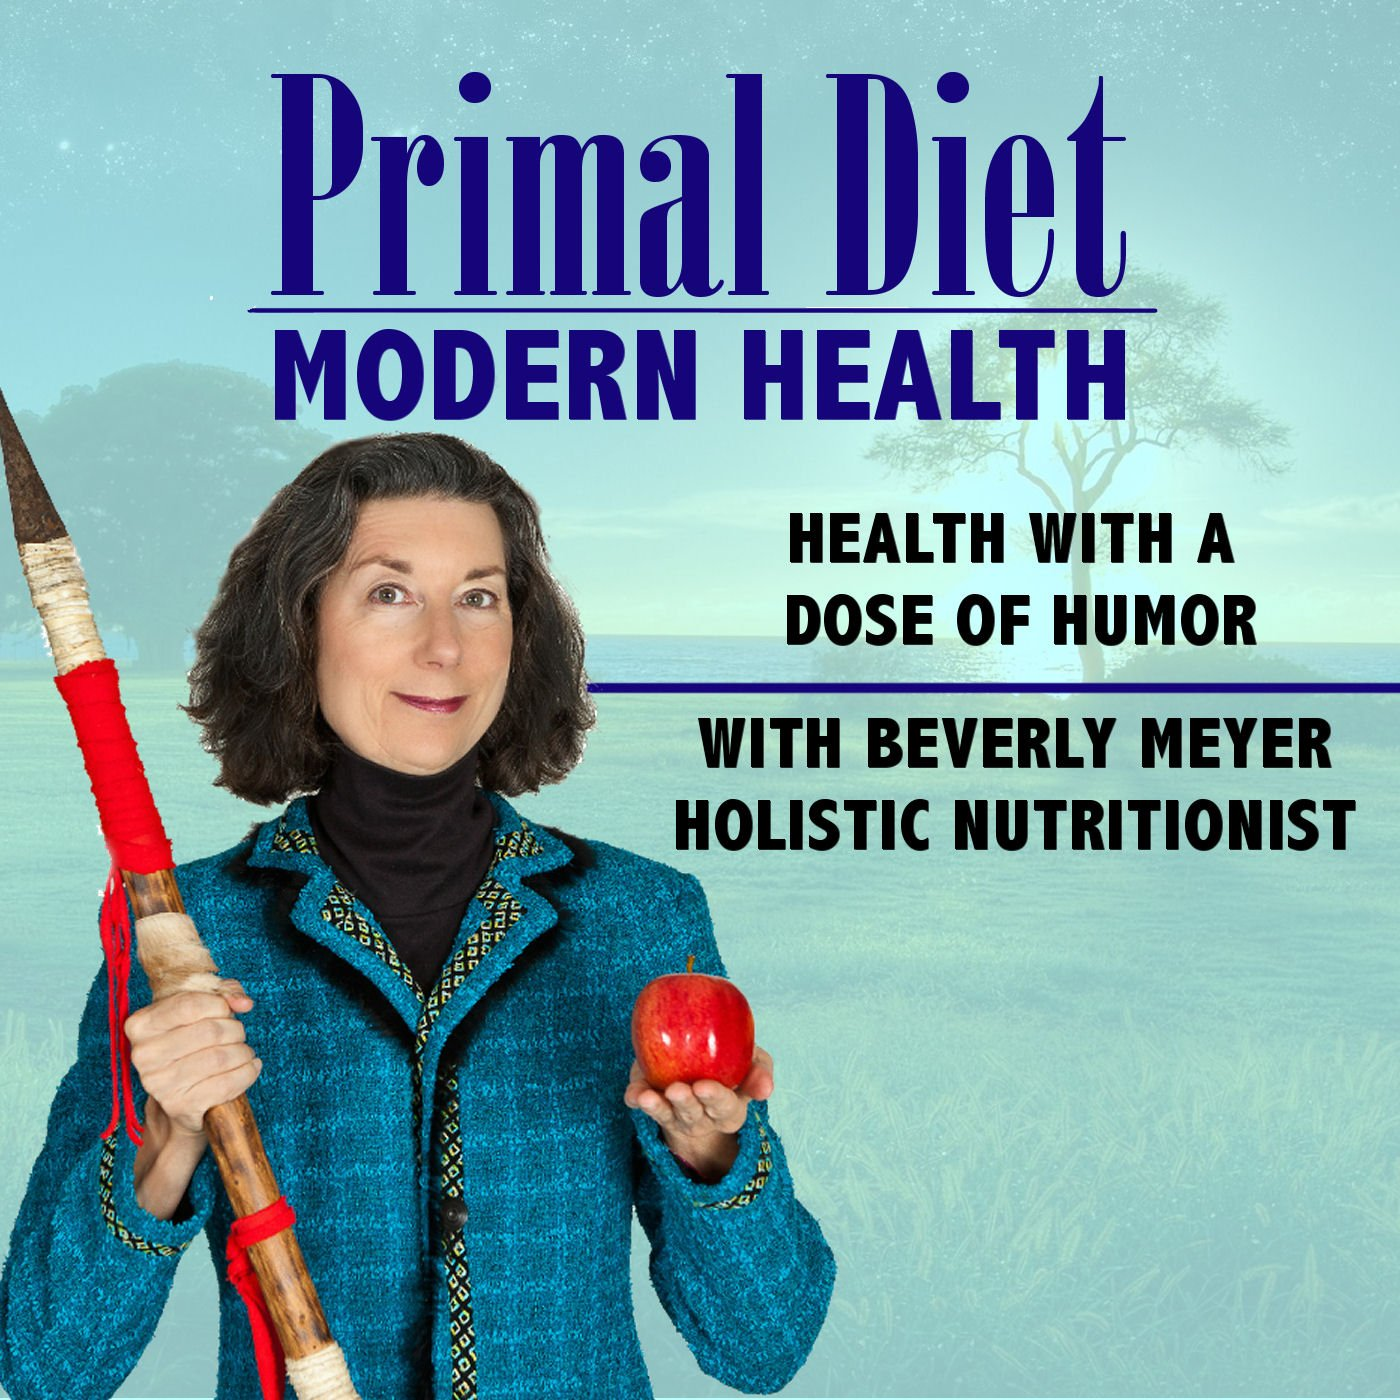 Primal Diet - Modern Health podcast with Beverly Meyer